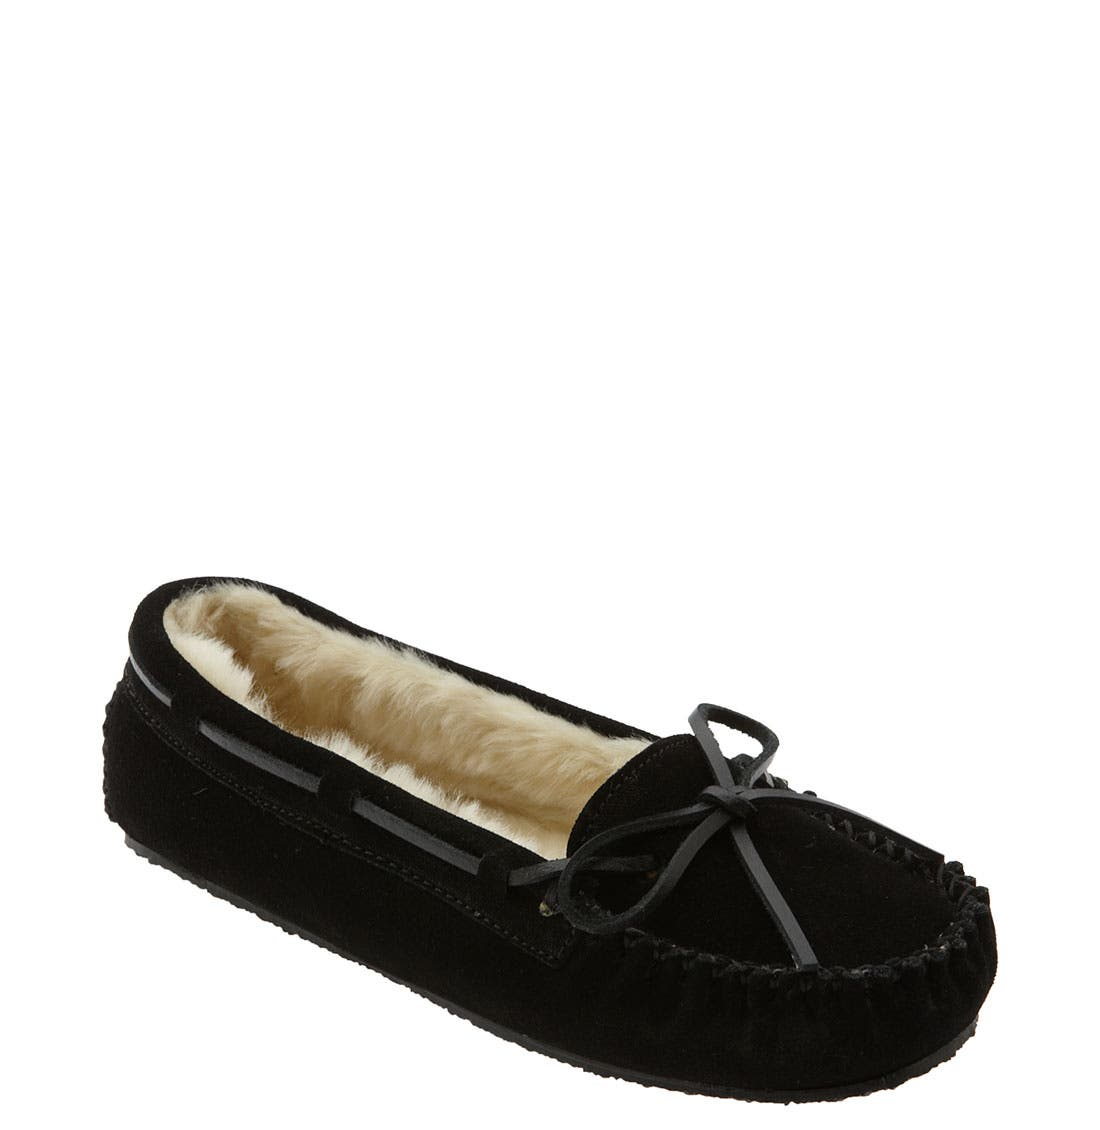 'Cally' Slipper,                             Main thumbnail 1, color,                             BLACK SUEDE